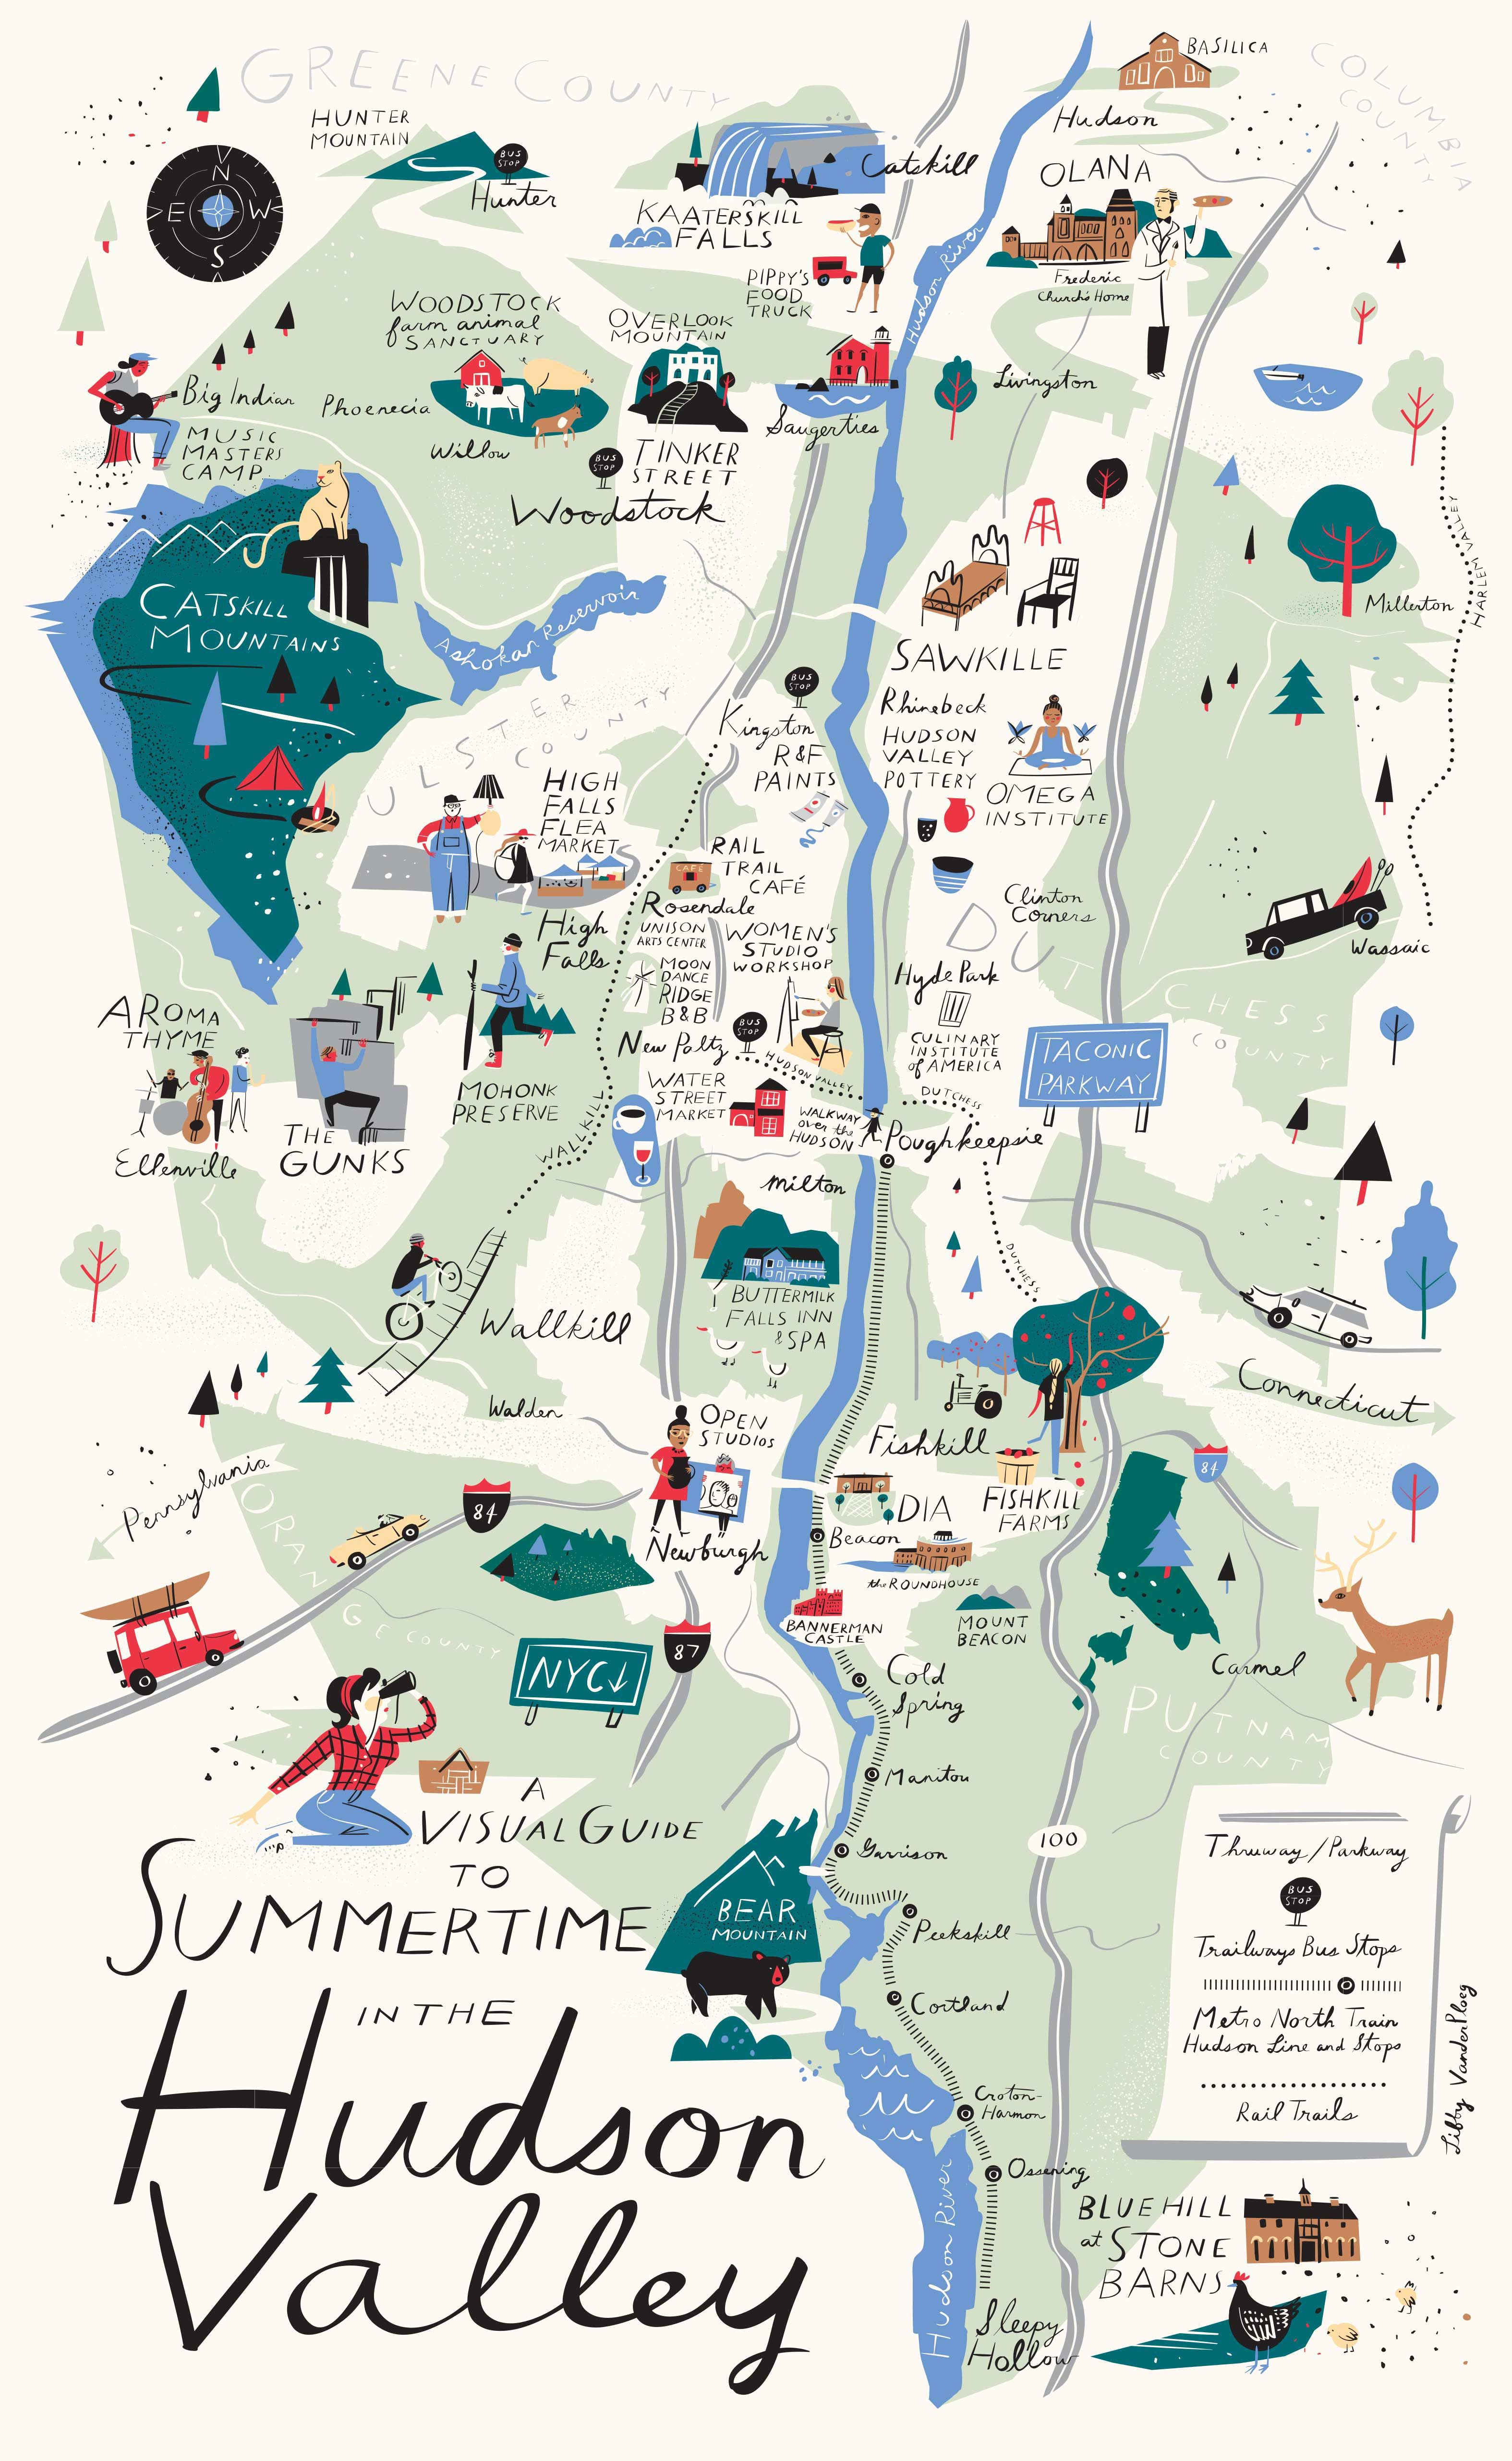 Hudson Ny Map >> A Visual Guide To Summertime In The Hudson Valley Upstater